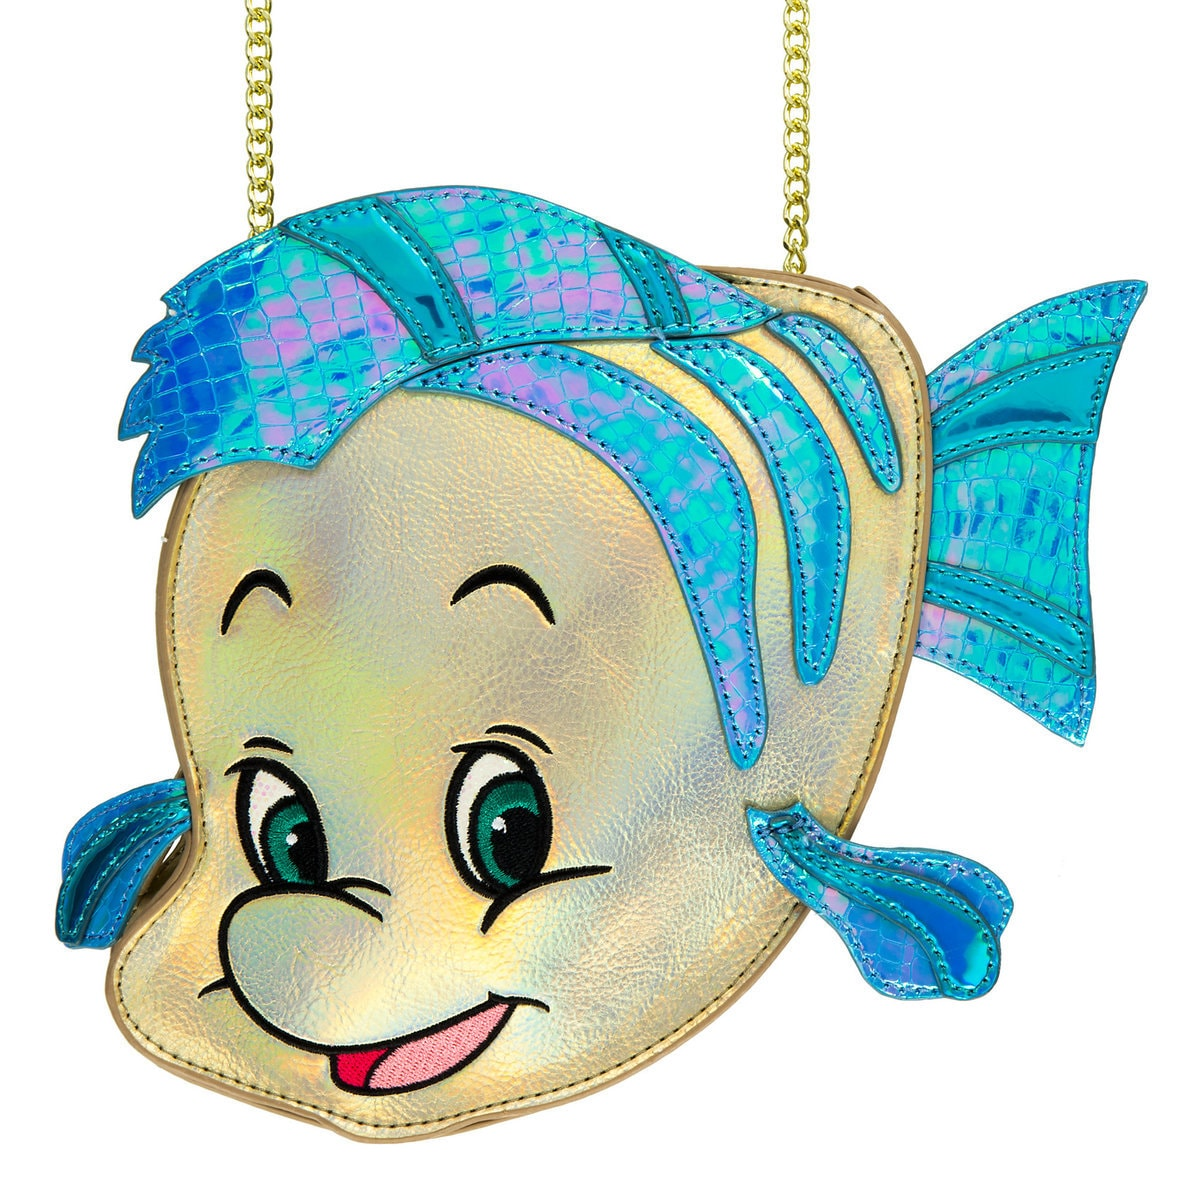 0645a17d4 Product Image of Flounder Crossbody Bag by Danielle Nicole # 1